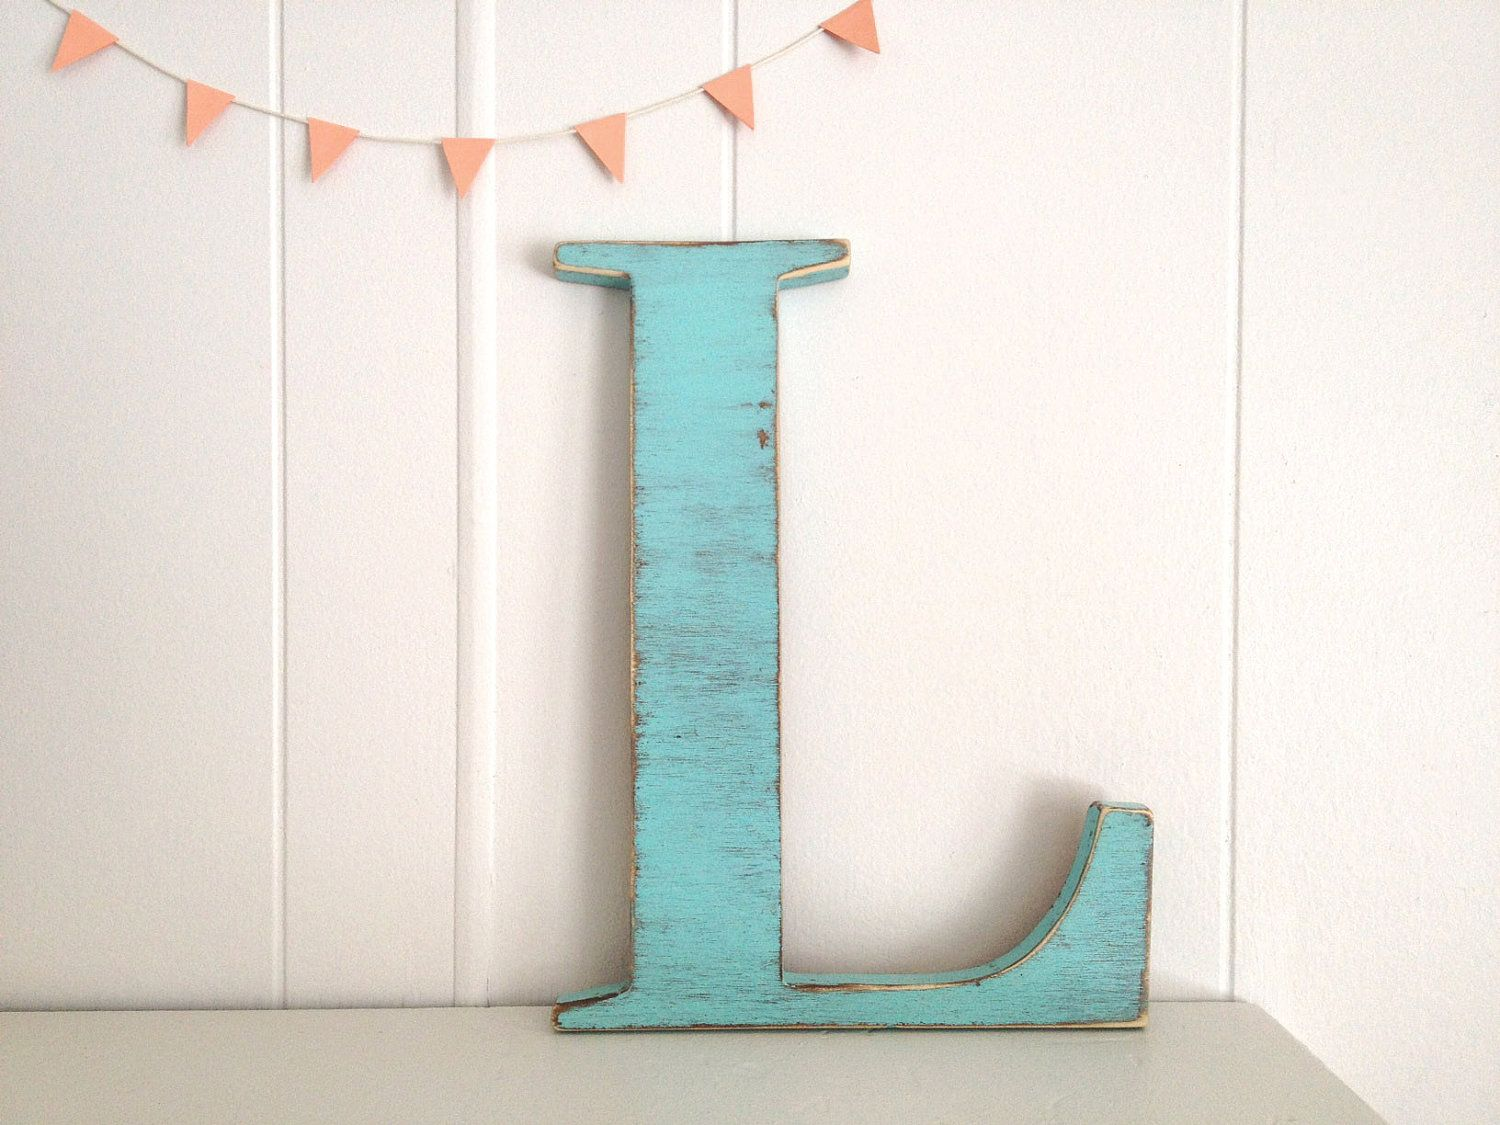 Decoration wood letters french cottage wall decor letter l light decoration wood letters french cottage wall decor letter l light turquoise 3200 via ppazfo